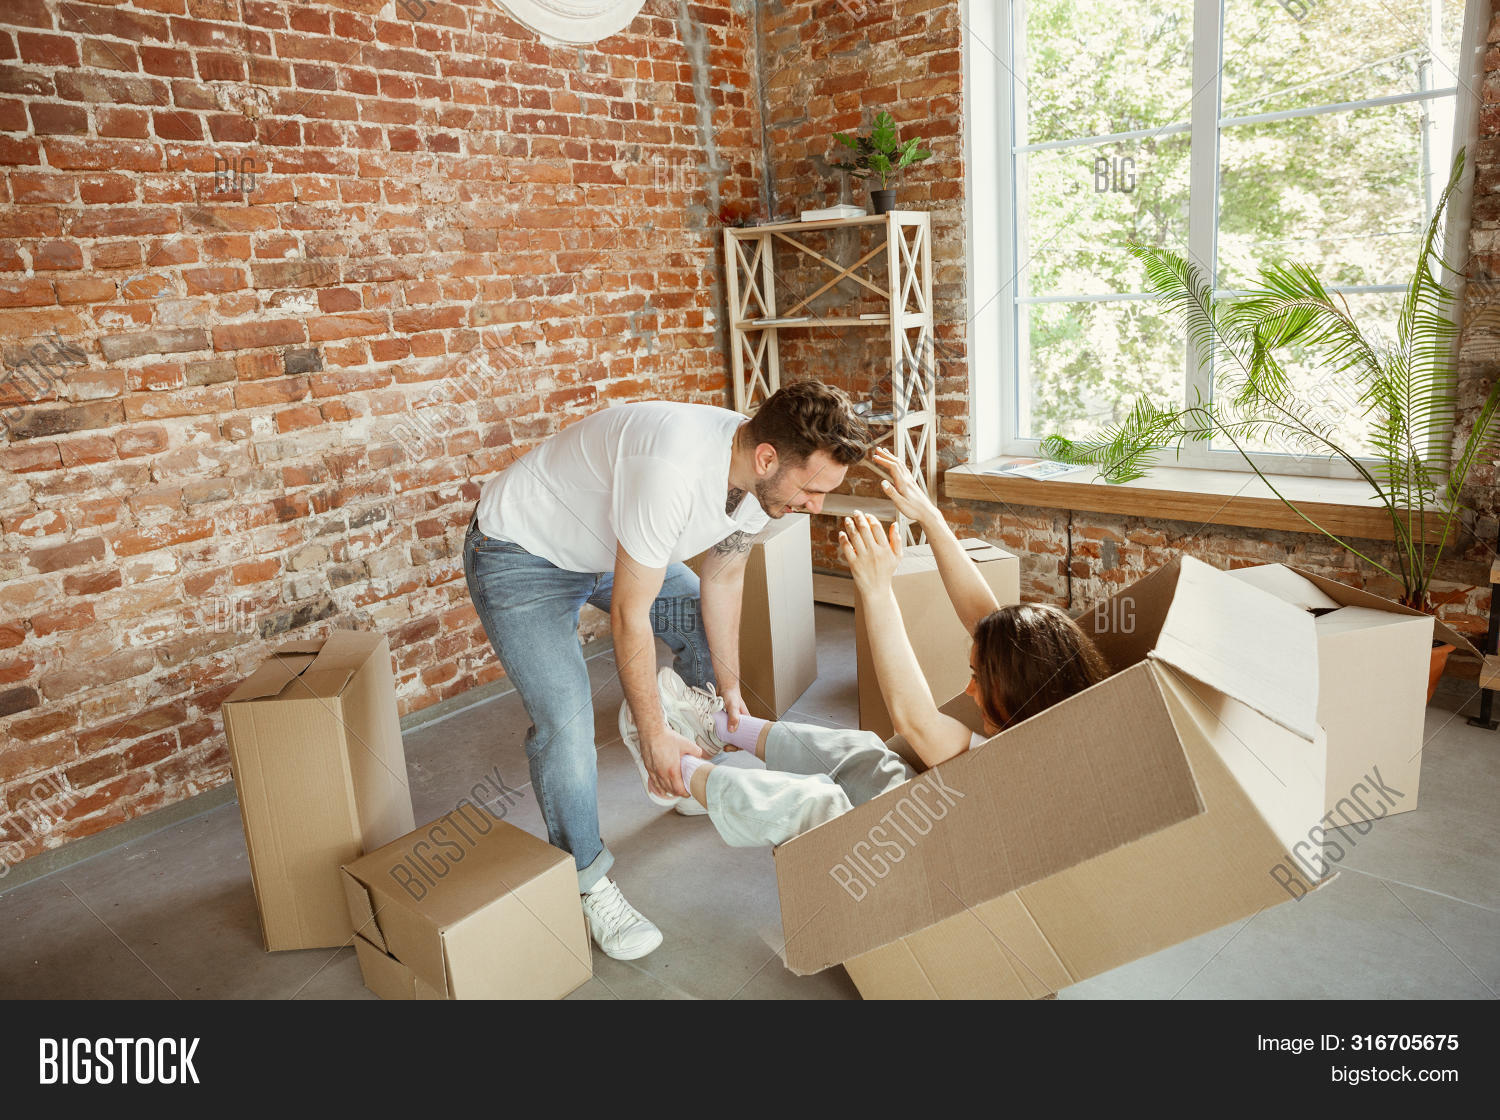 apartment,background,beautiful,beginnings,box,boxes,cardboard,carton,casual,cheerful,container,couple,day,daylight,domestic,female,floor,happy,home,homeowner,house,husband,indoors,laughing,lifestyle,love,male,man,men,move,moving,new,owner,package,packing,pause,people,photographing,portrait,real,relaxing,rent,sitting,smile,together,two,unpacking,urban,wife,woman